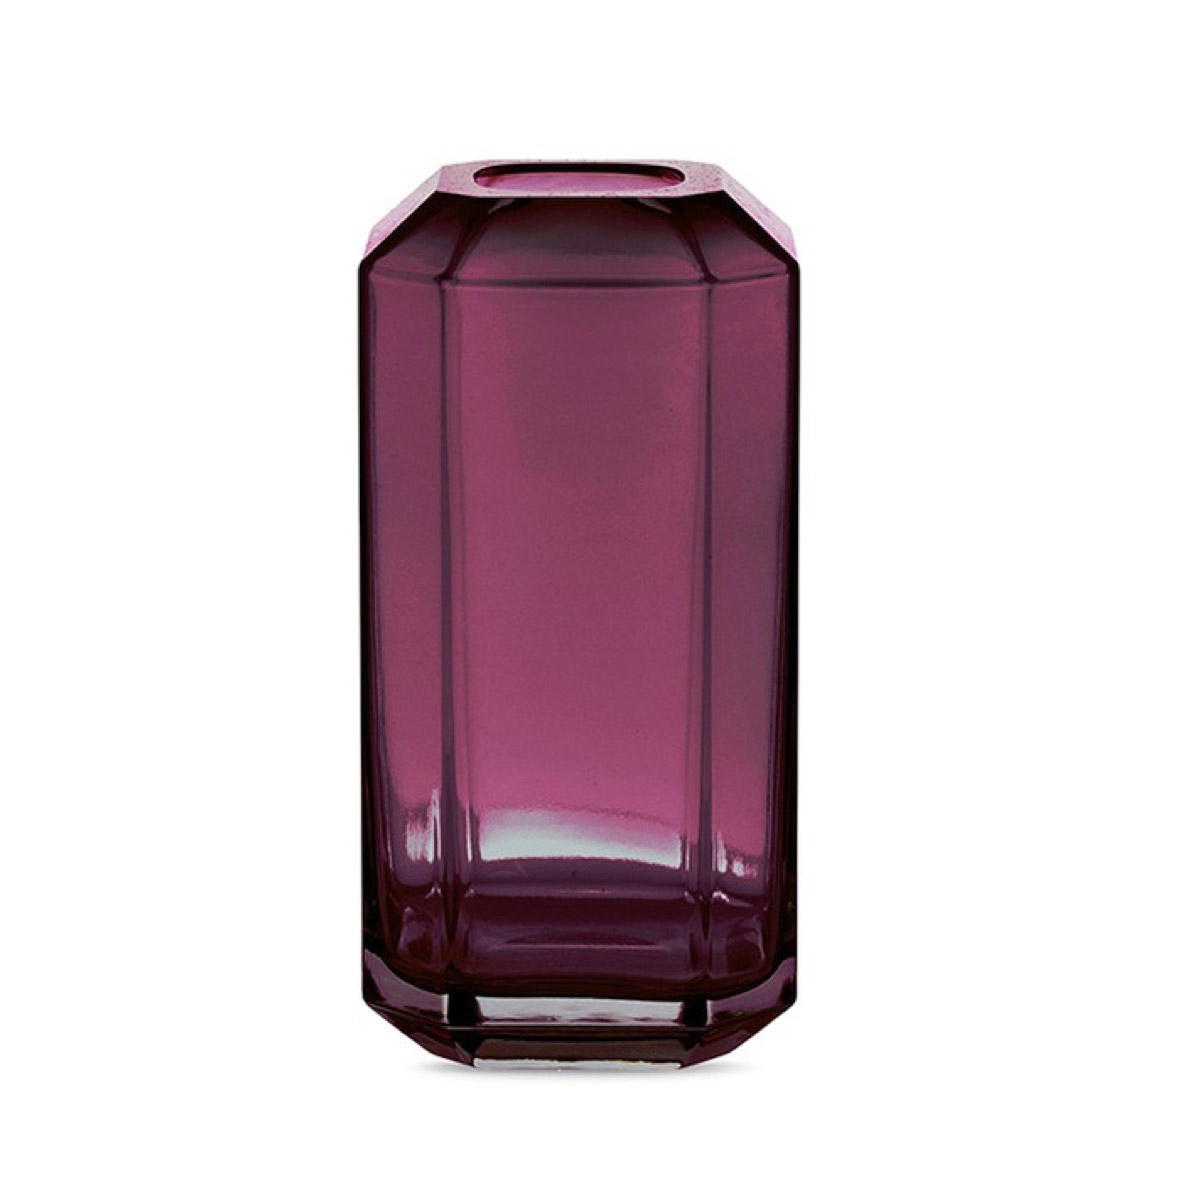 Jewel vase, small